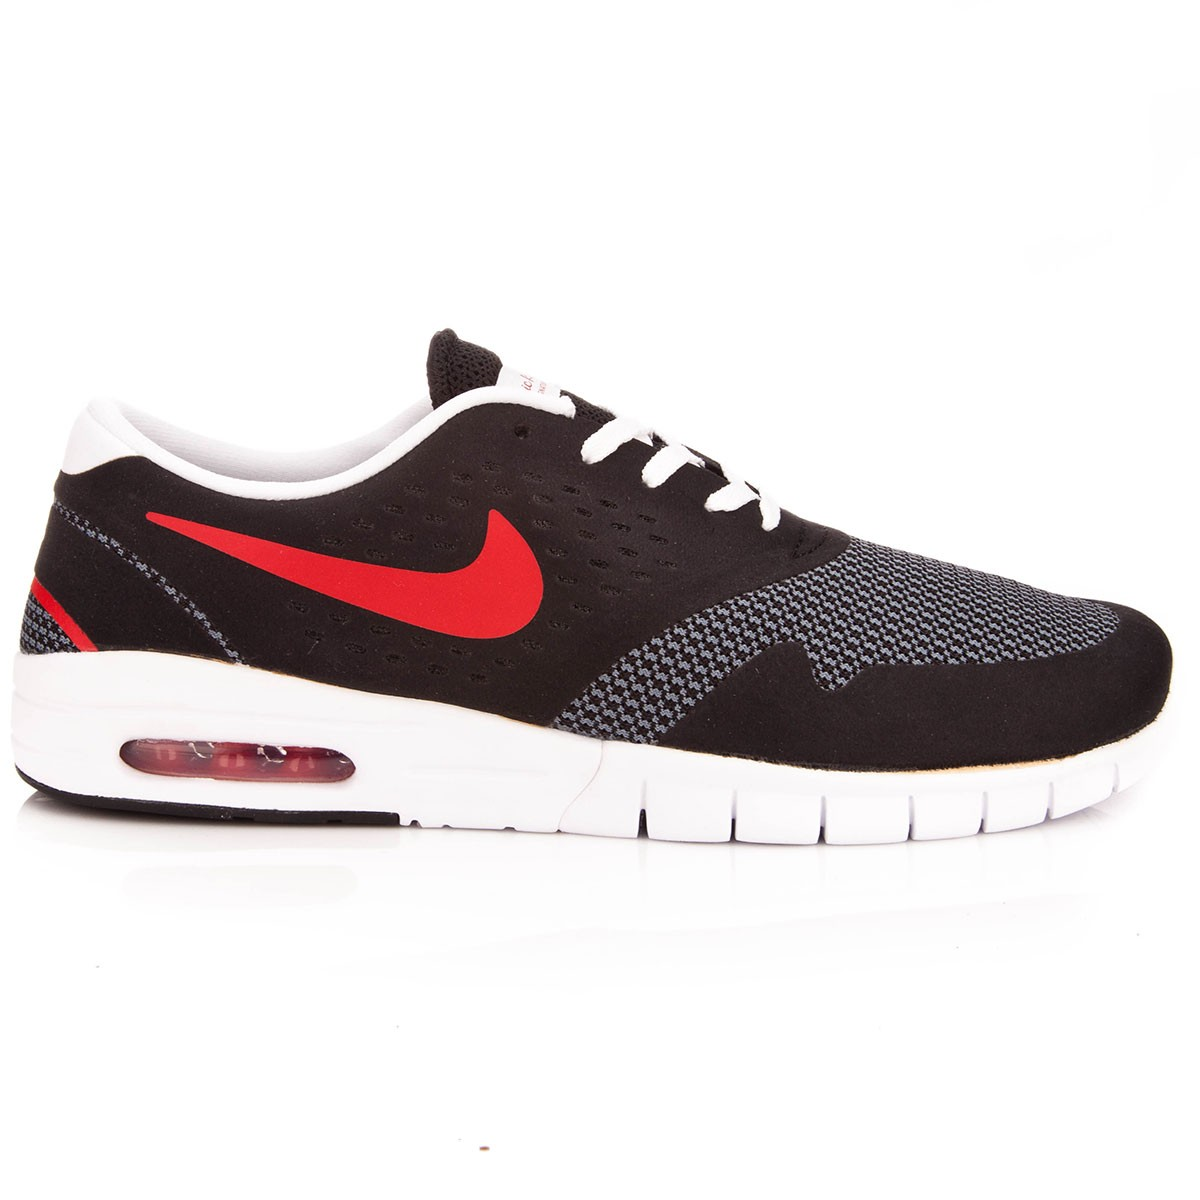 Eric Koston Shoes For Sale